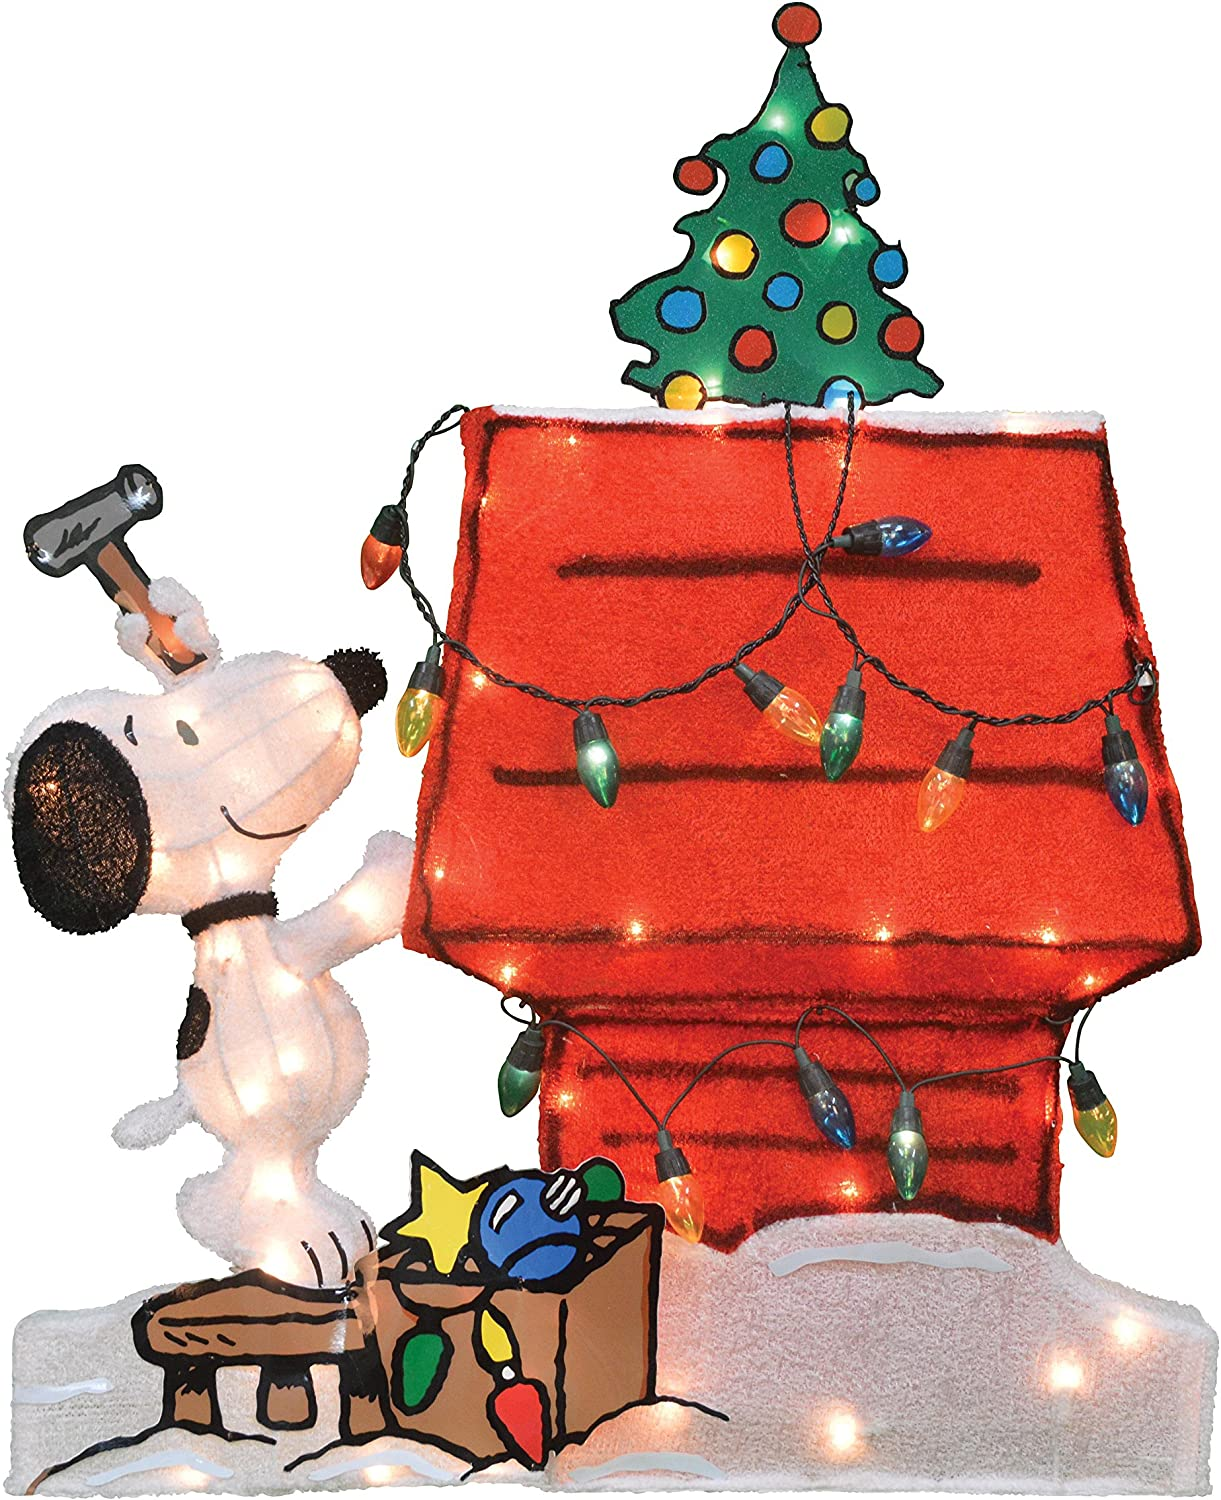 ProductWorks 70306_L2D Peanuts Christmas Outdoor Décor, Snoopy Decorating Dog House